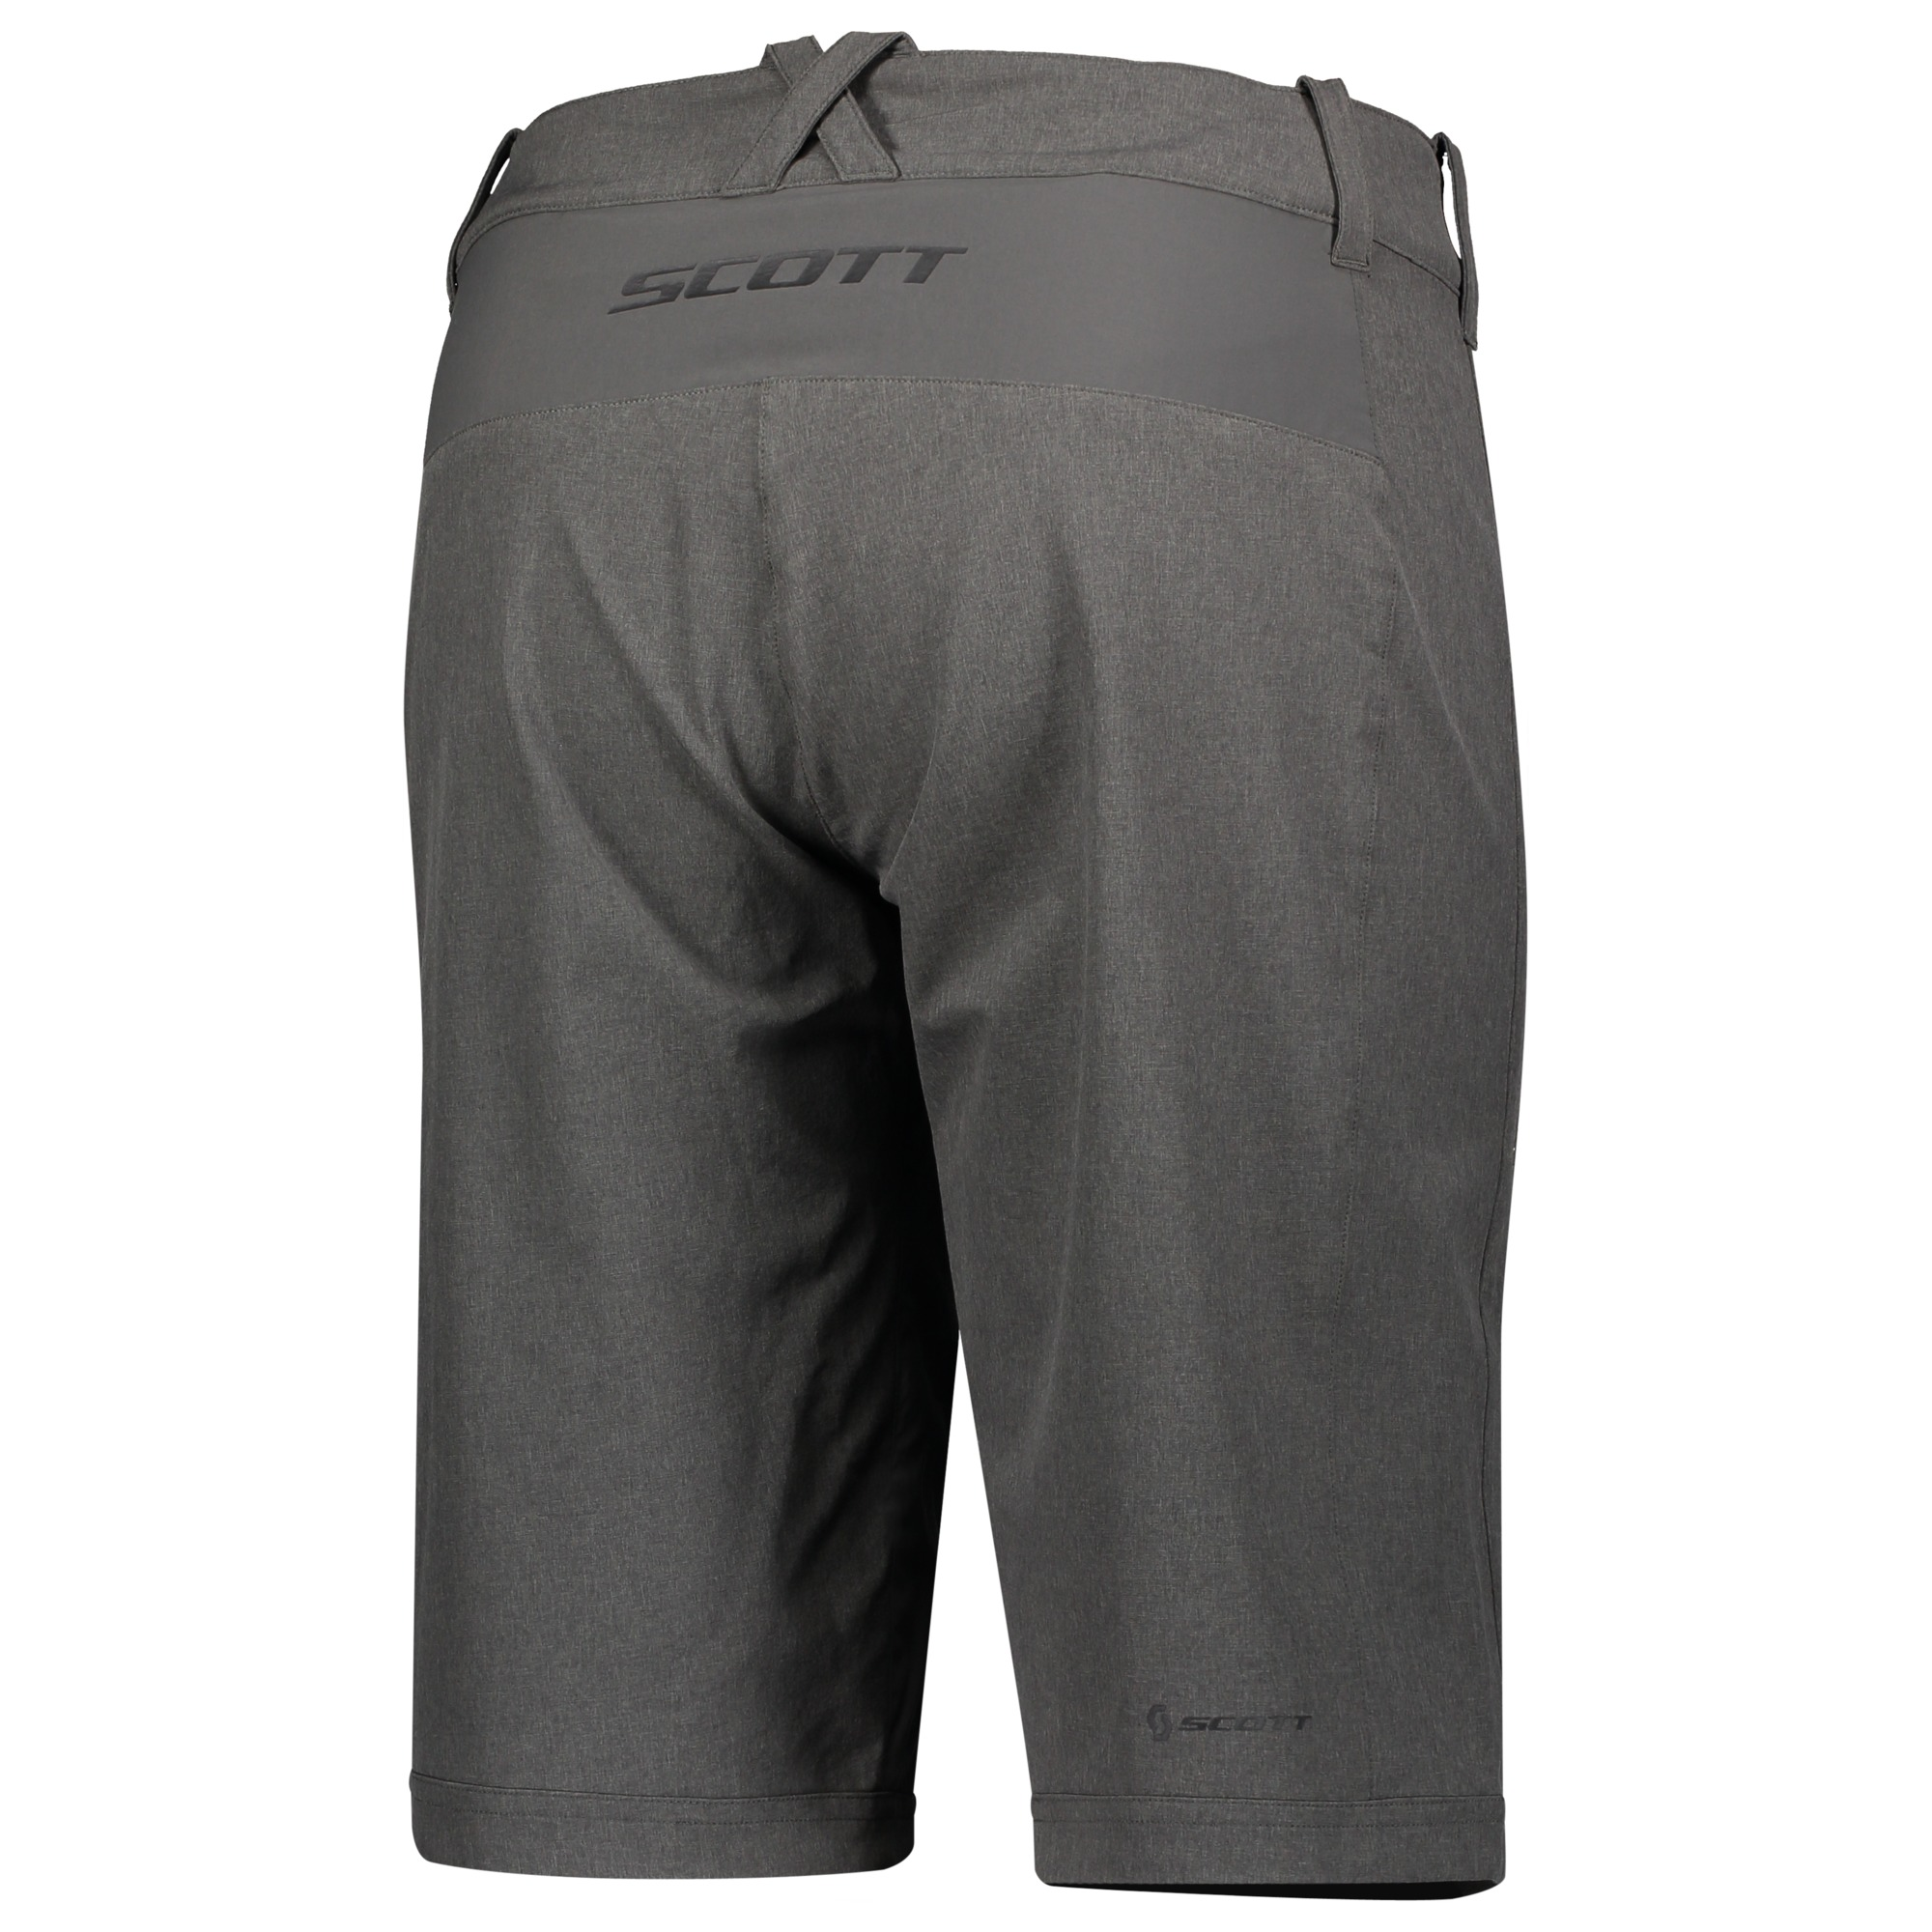 SCOTT Trail Flow Pro w/pad Women's Shorts